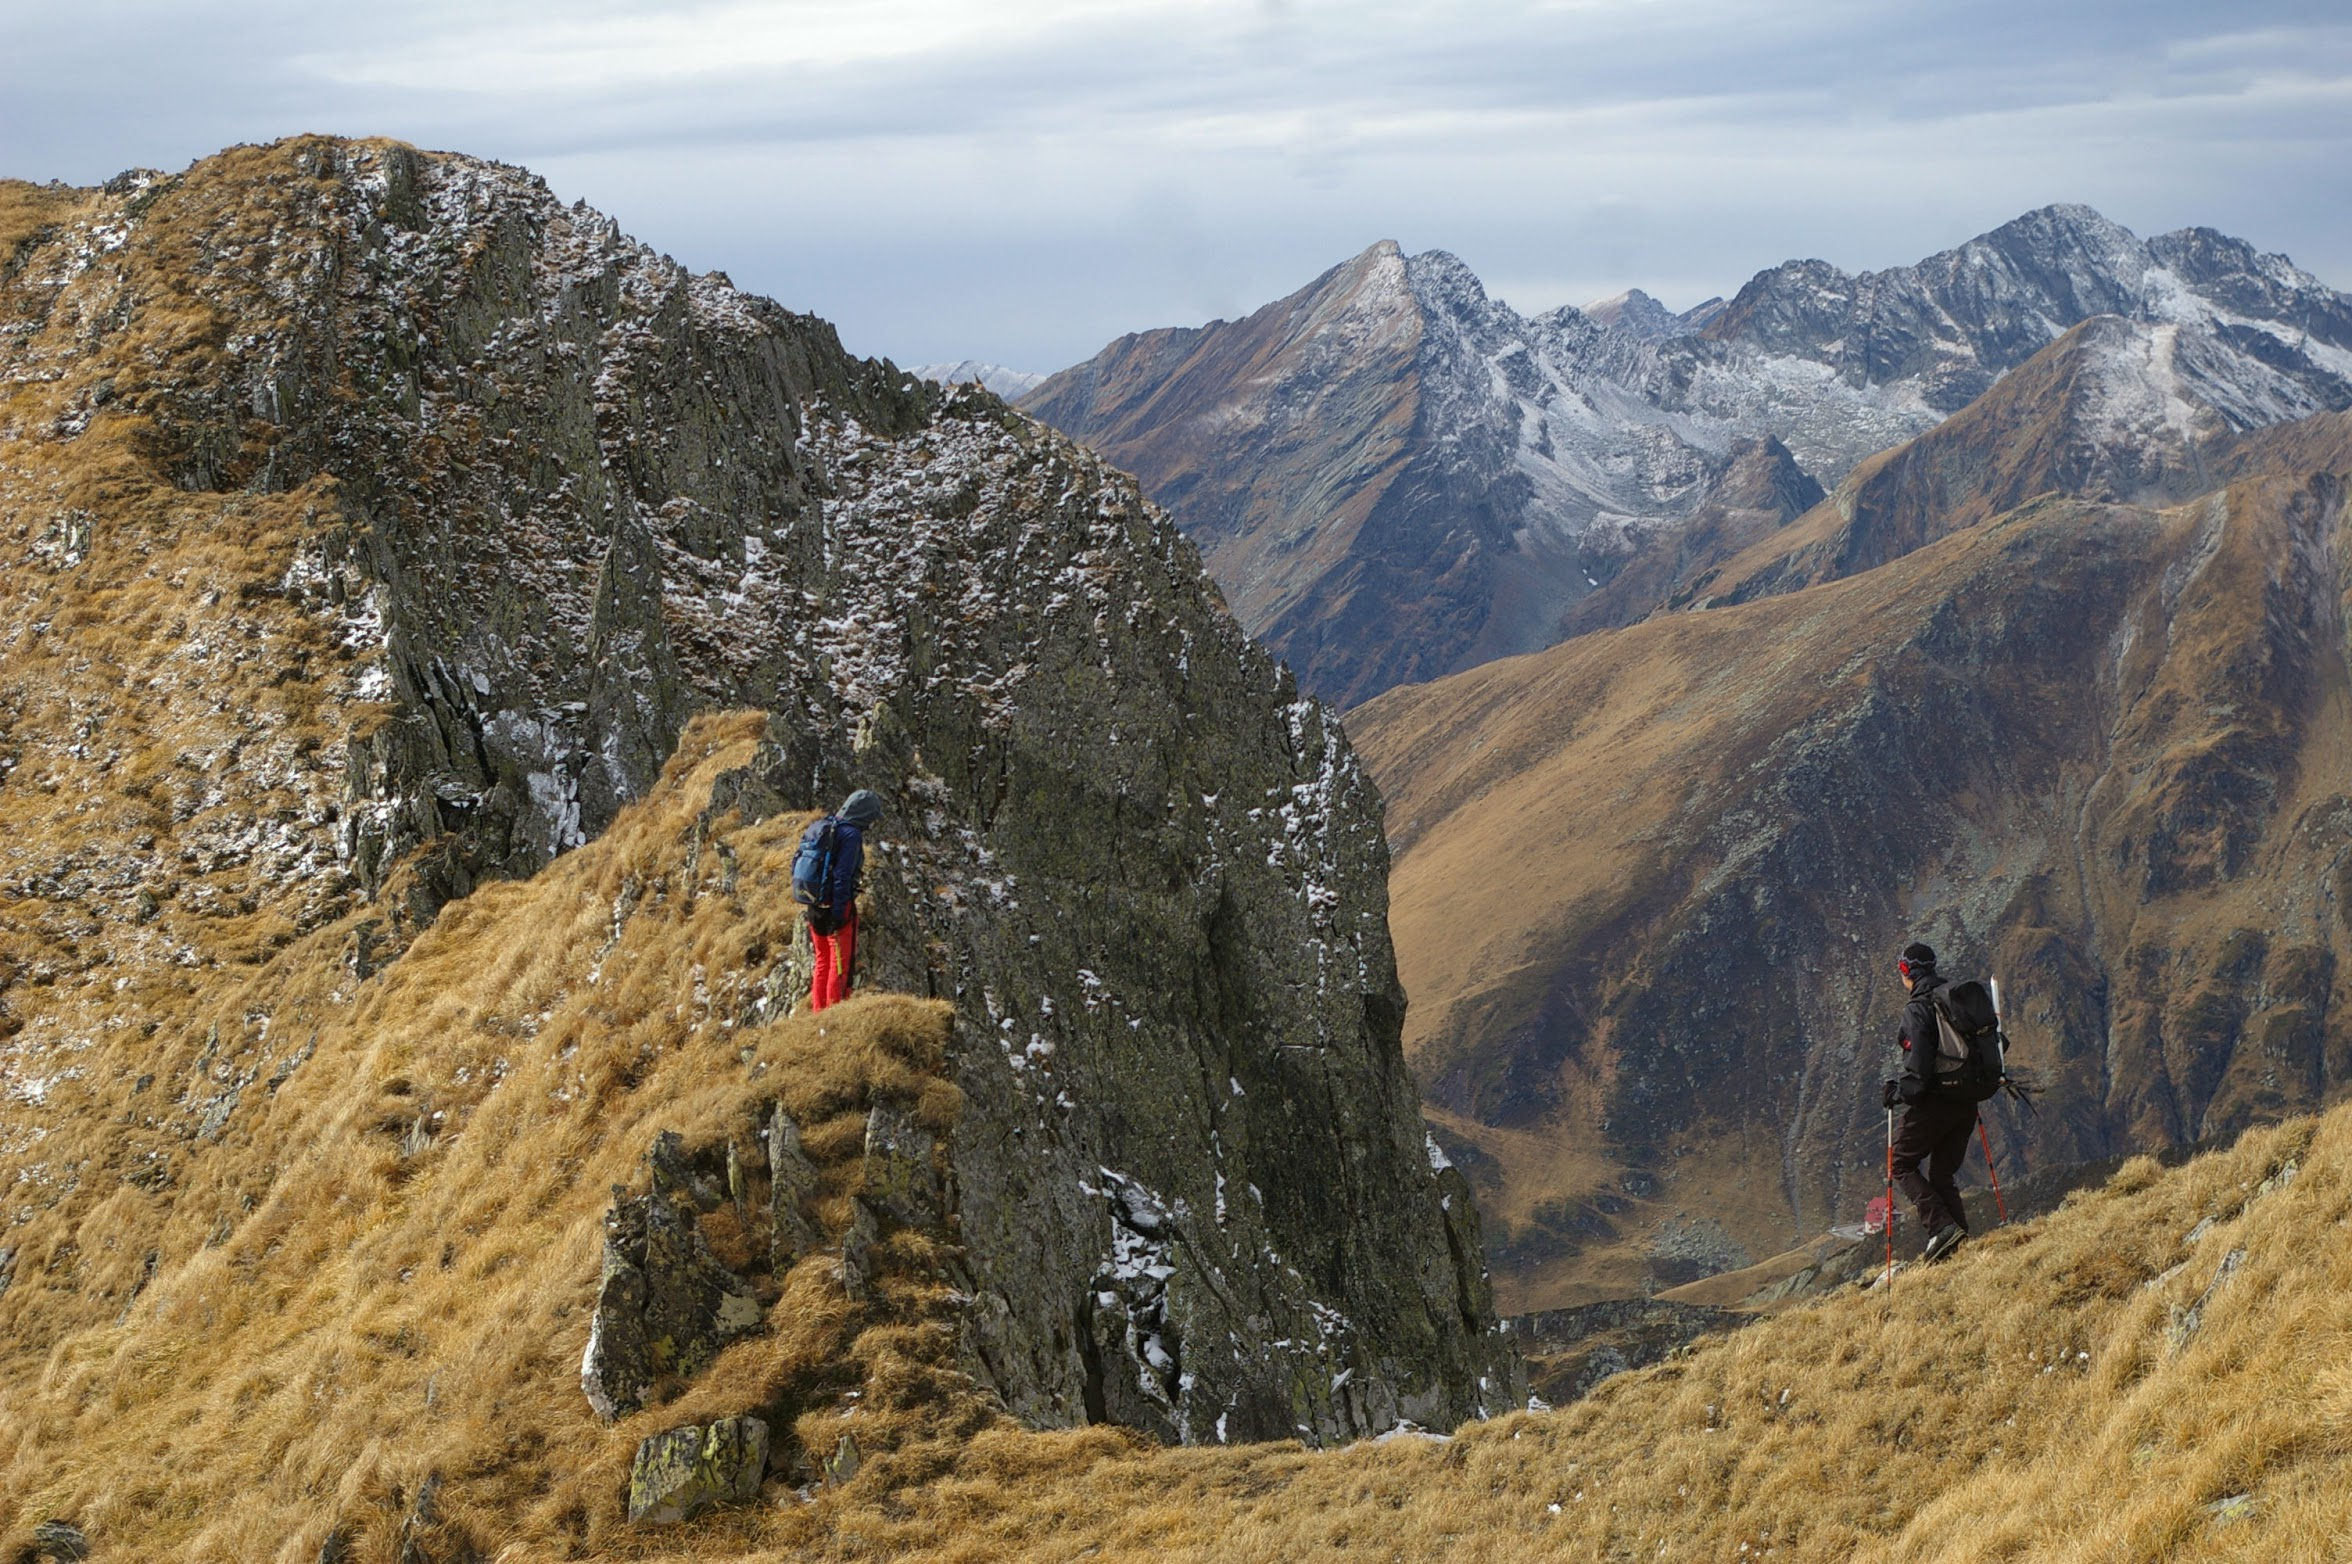 Hiking the Longest and Highest Ridge of Romania – 7 Days In Transylvanian Alps